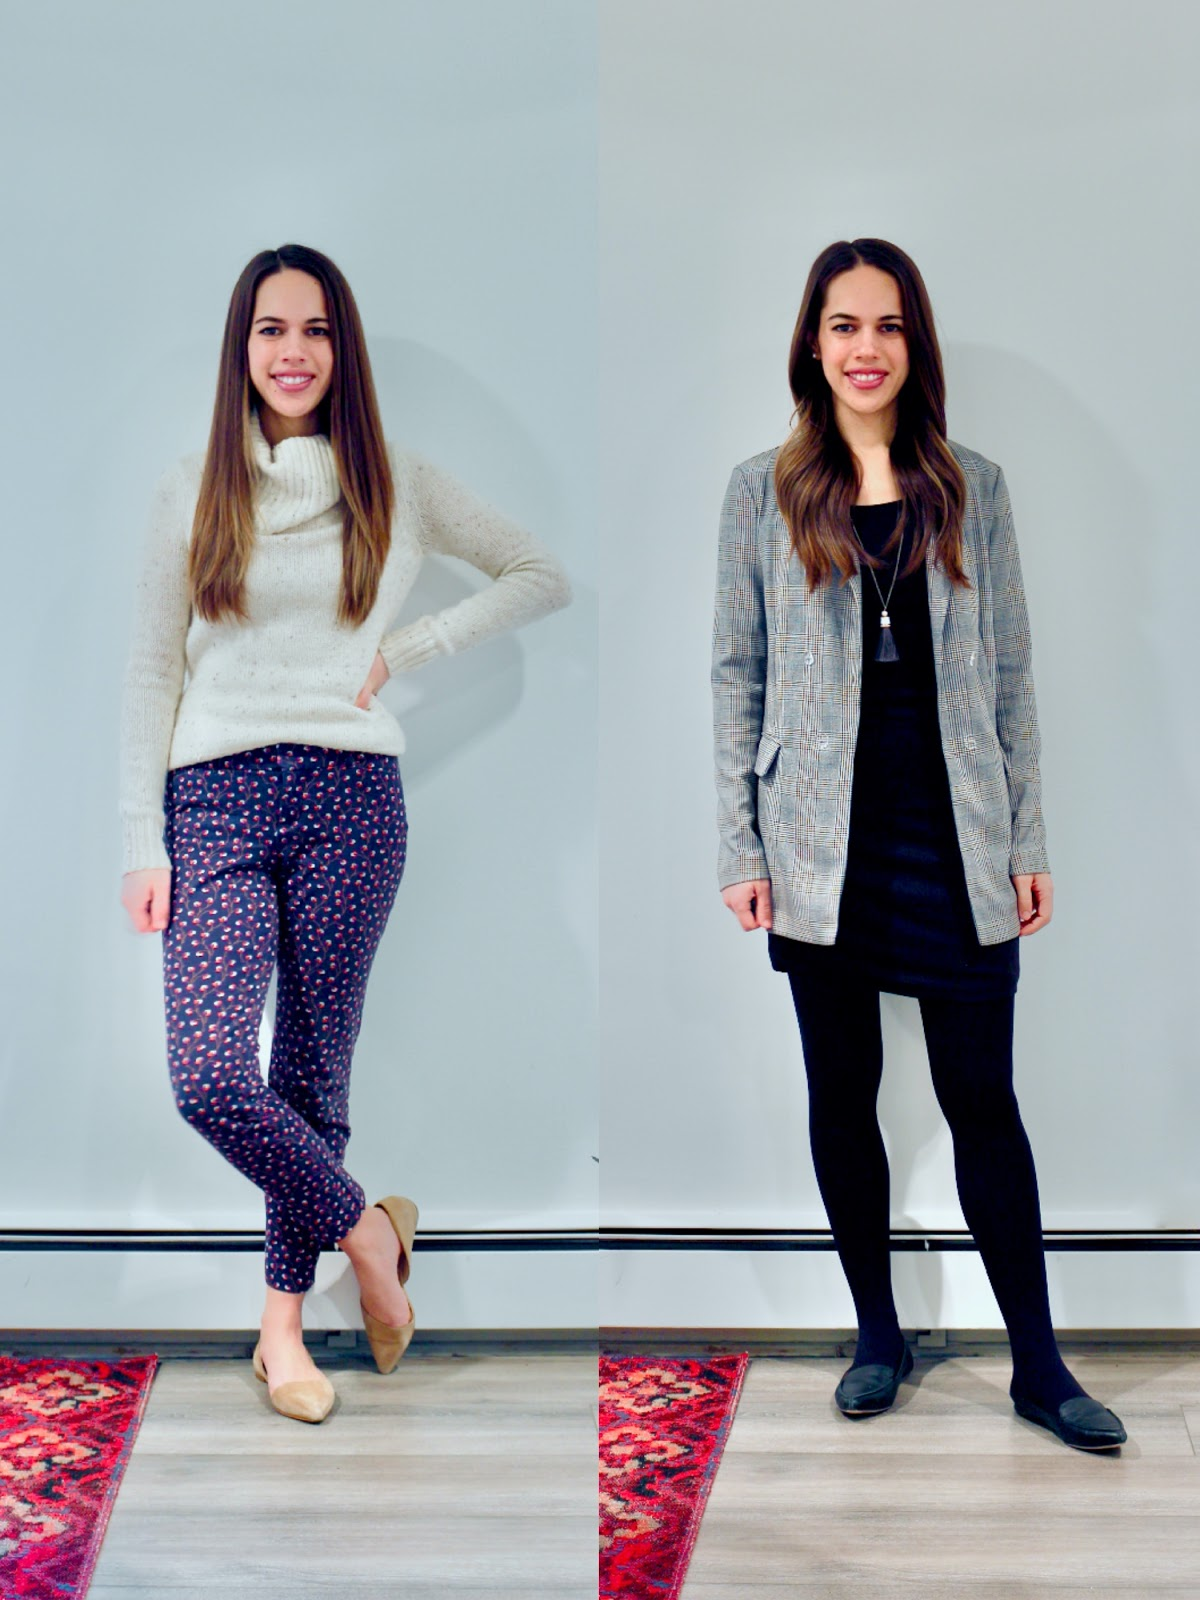 Jules in Flats - February Outfits Week 1 (Business Casual Winter Workwear on a Budget)